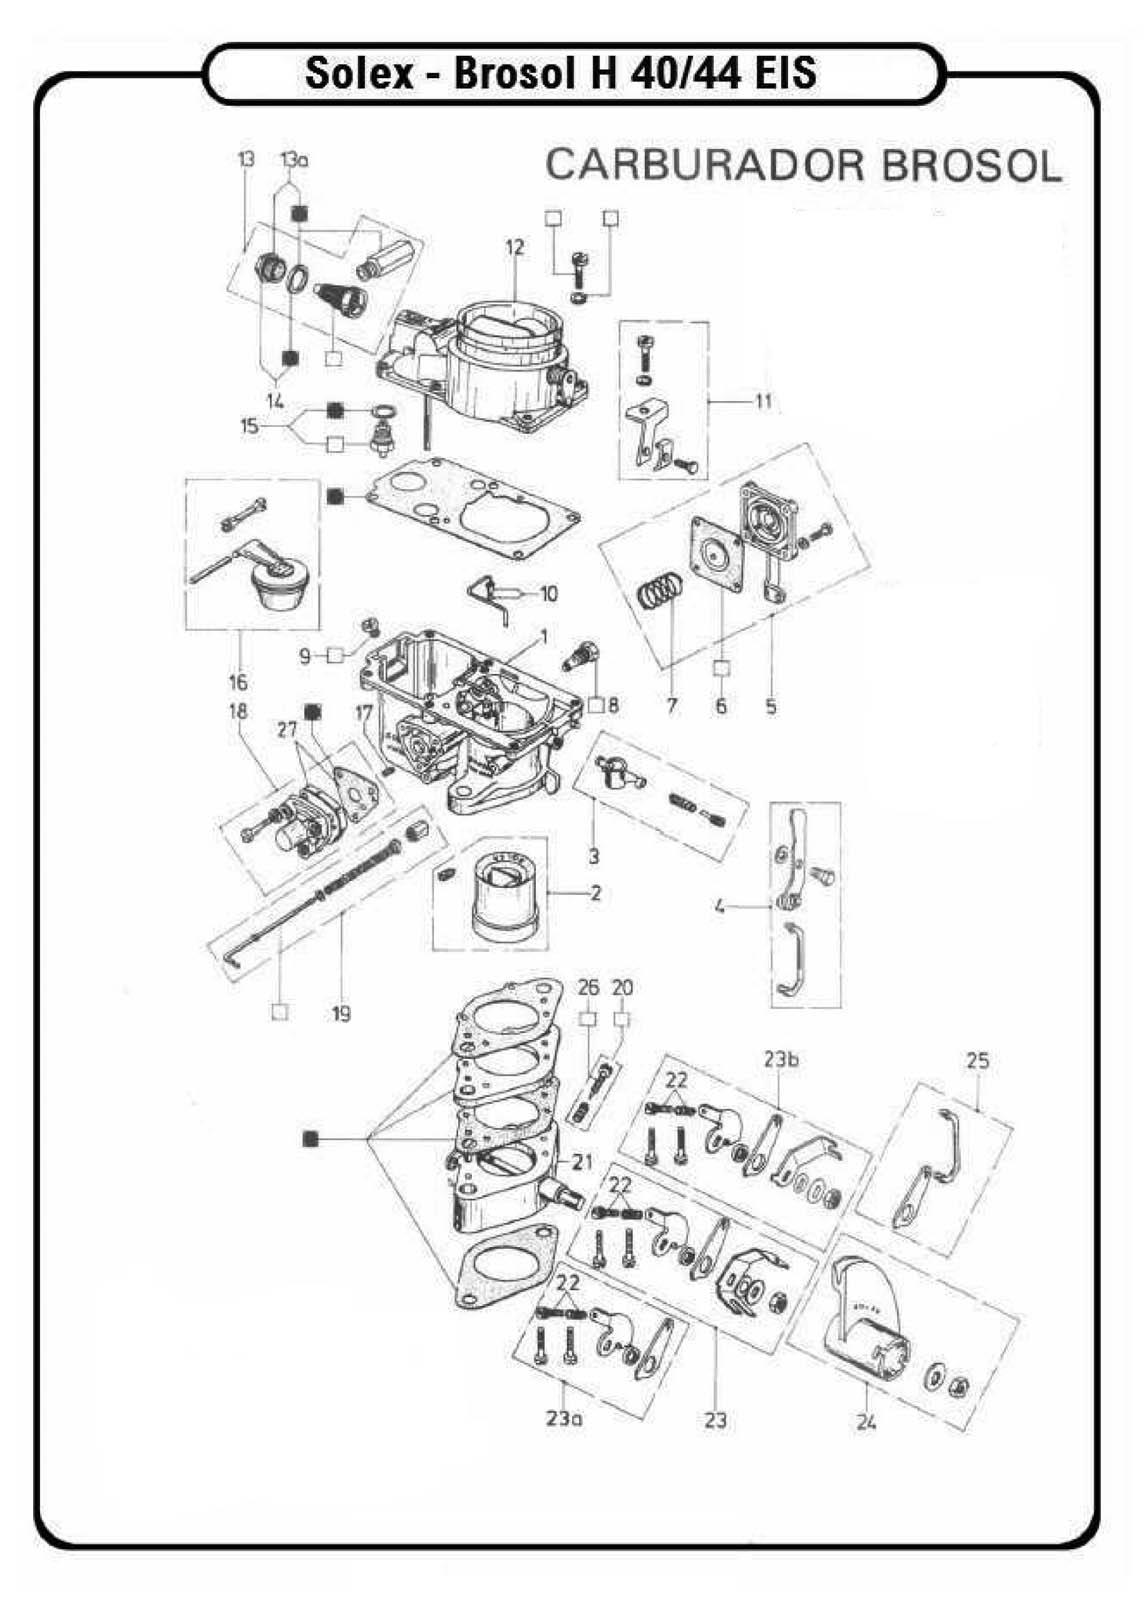 1976 vw beetle wiring diagram